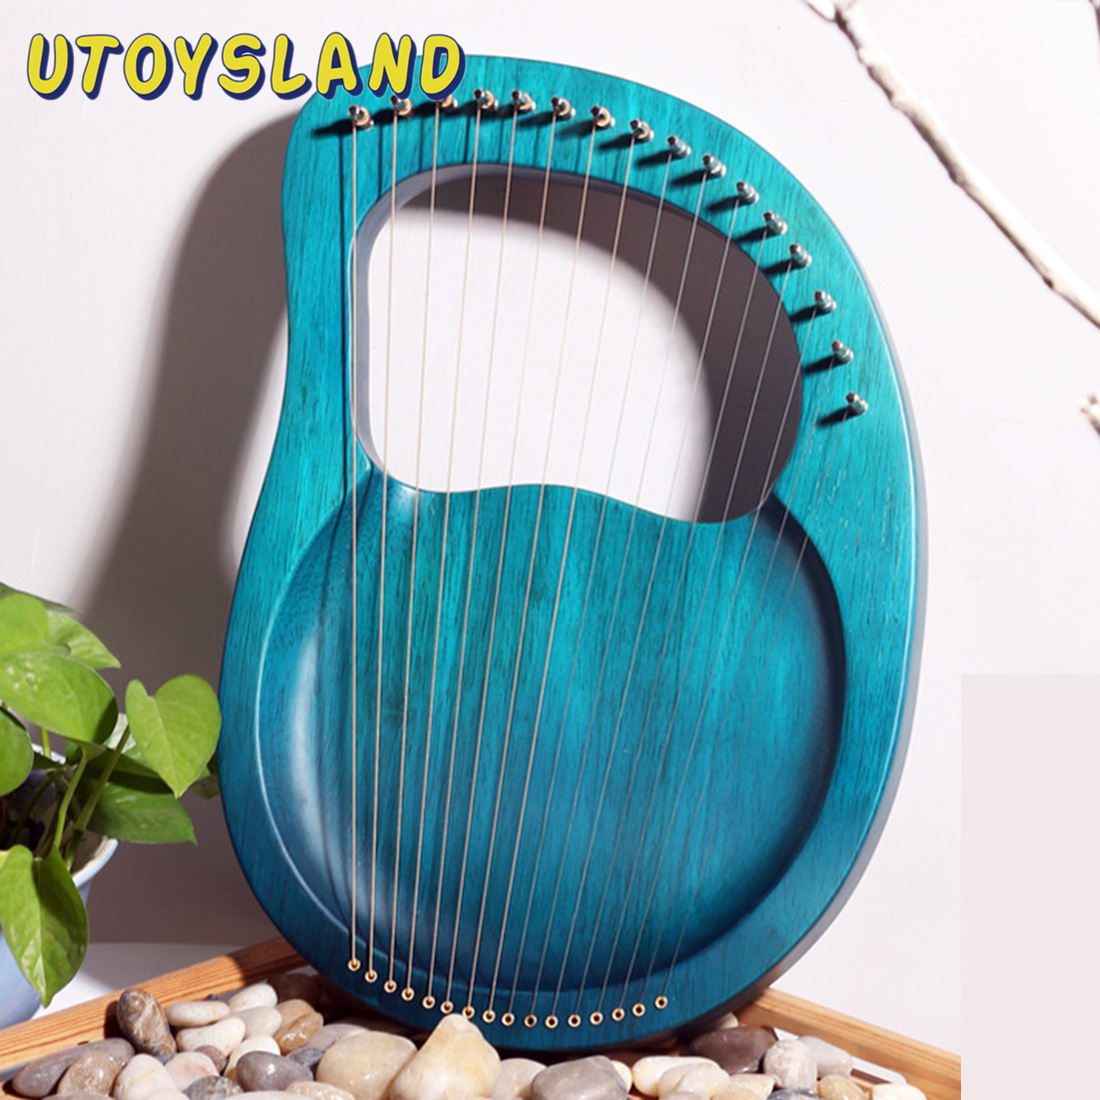 16 Strings Solid Wood Lyre Wooden Harp Classical Musical Instruments Children Christmas Gift - Pink/Burlywood/Indigo Blue/Claret